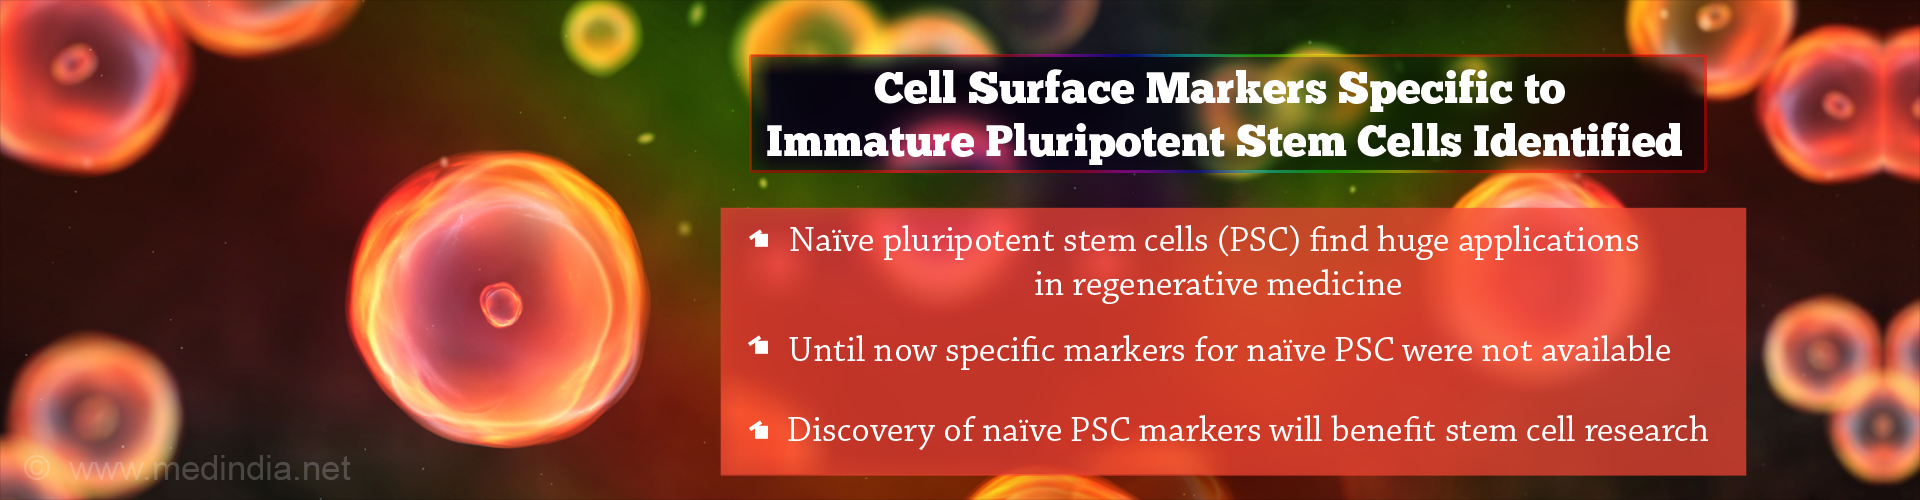 Cell Surface Markers Specific to Immature Pluripotent Stem Cells Identified